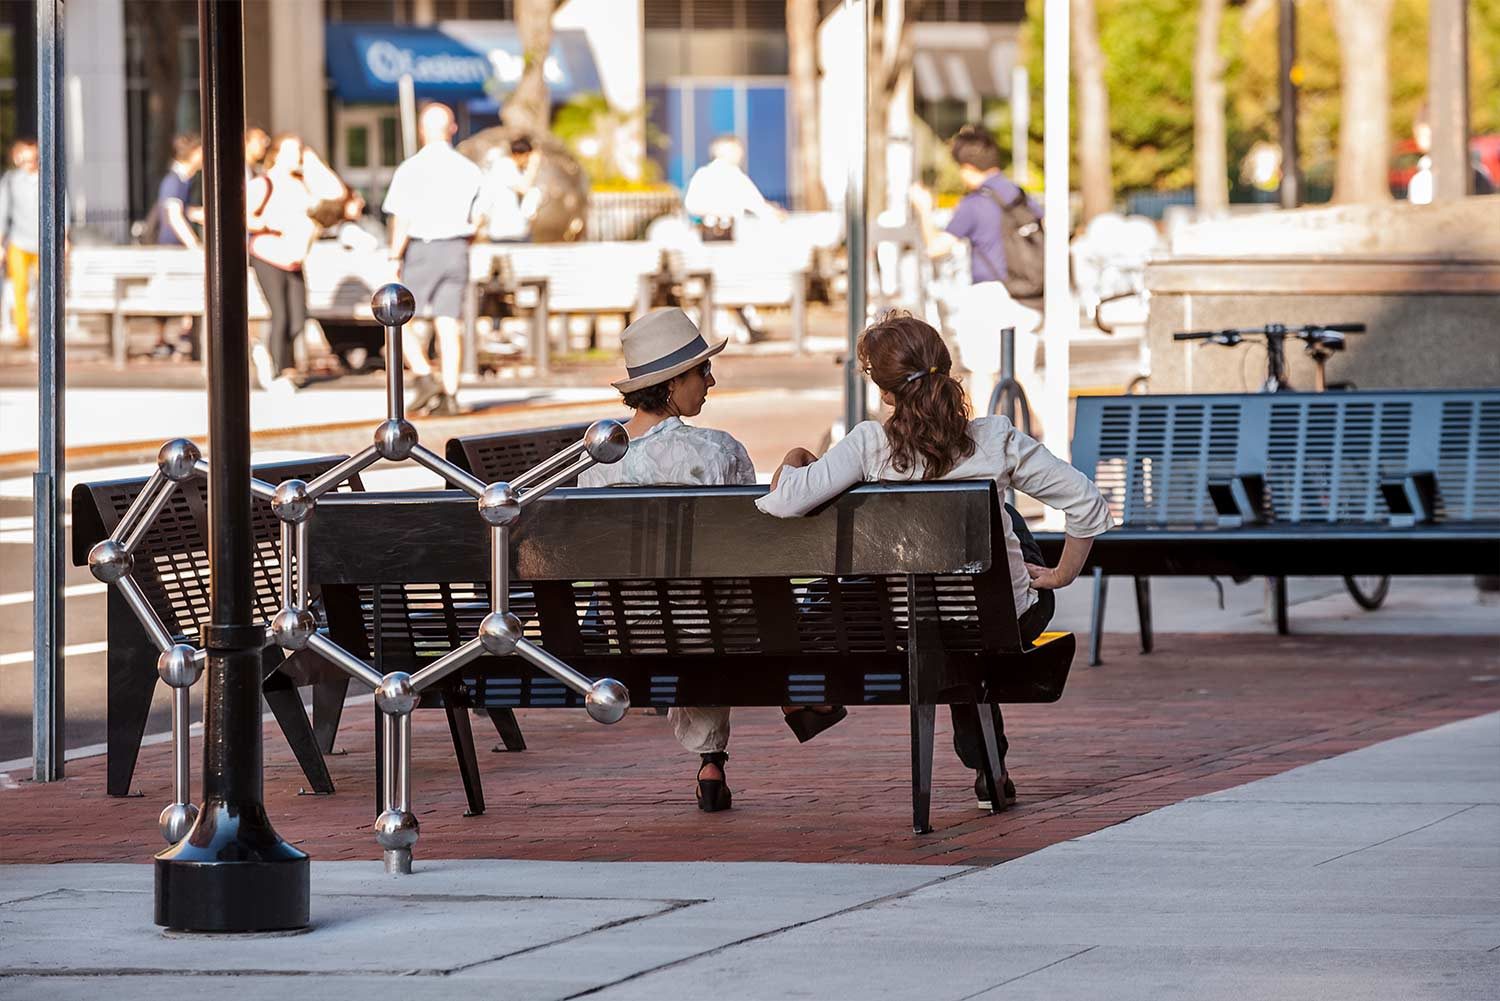 Kendall-Square_caffeine-molecule-bike-rack_streetscape-furniture-room_Klopfer-Martin.jpg